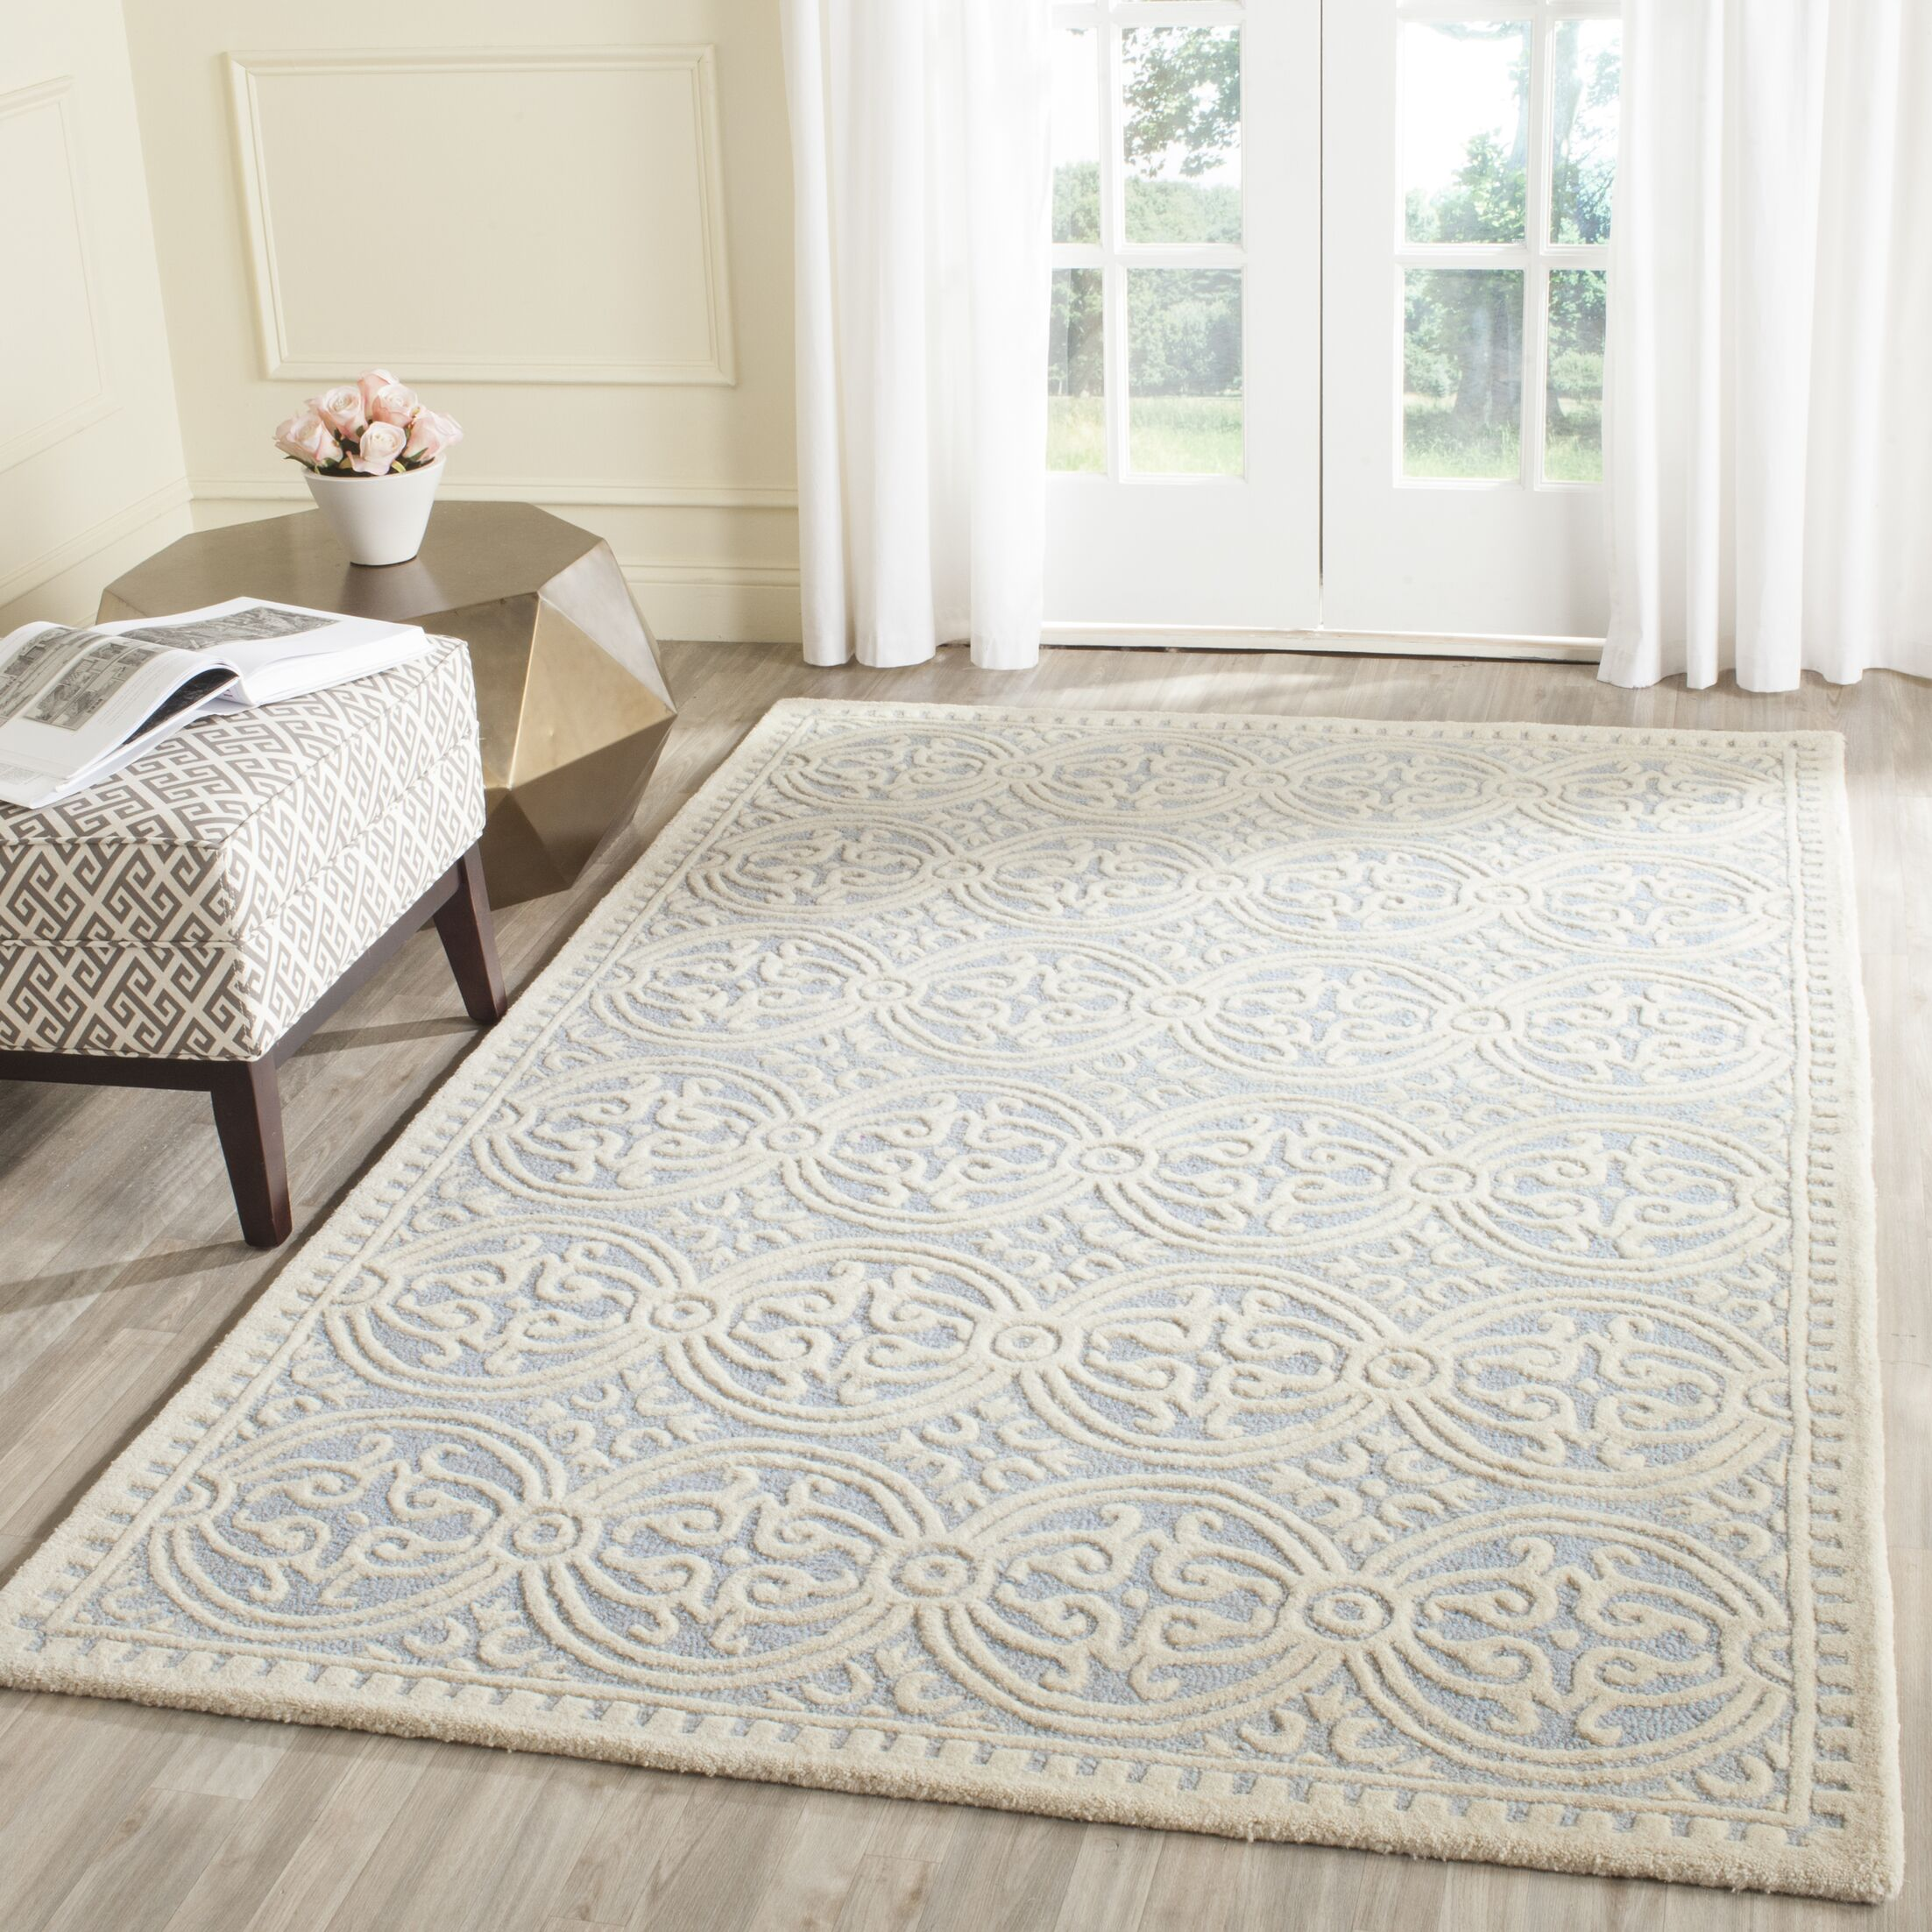 Martins Hand-Tufted Wool Light Blue/Ivory Area Rug Rug Size: Rectangle 7'6